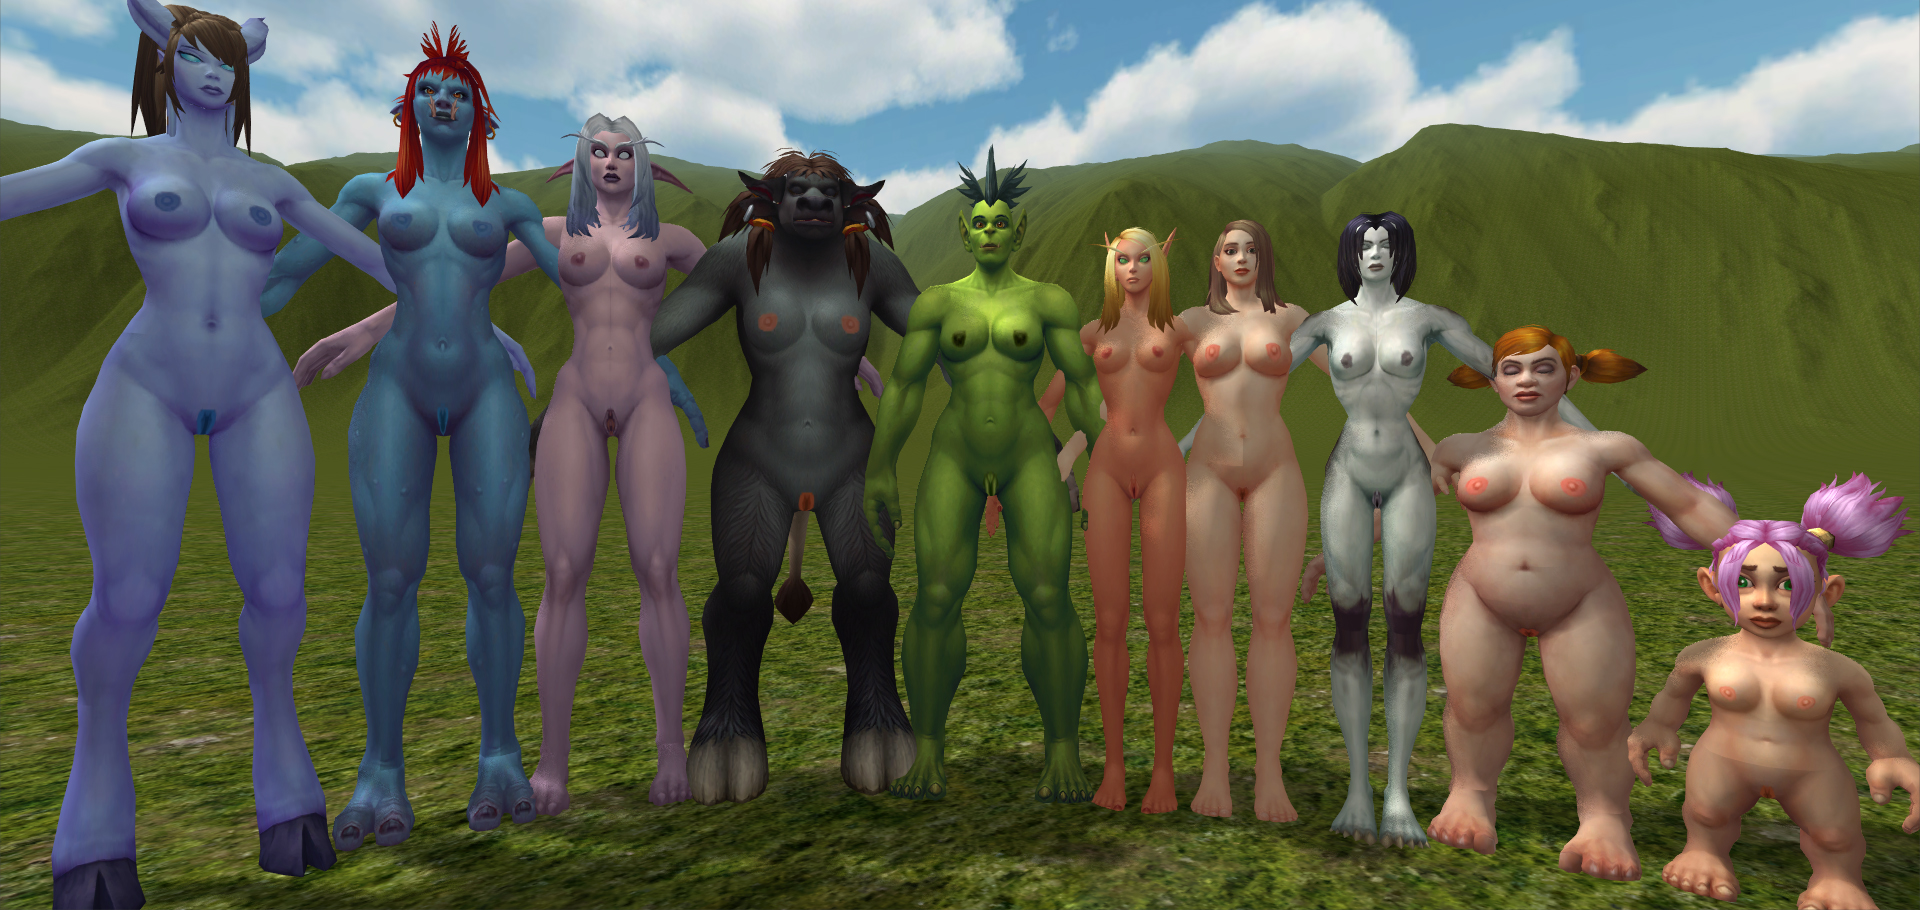 Warcraft nude skins having sex sexy picture